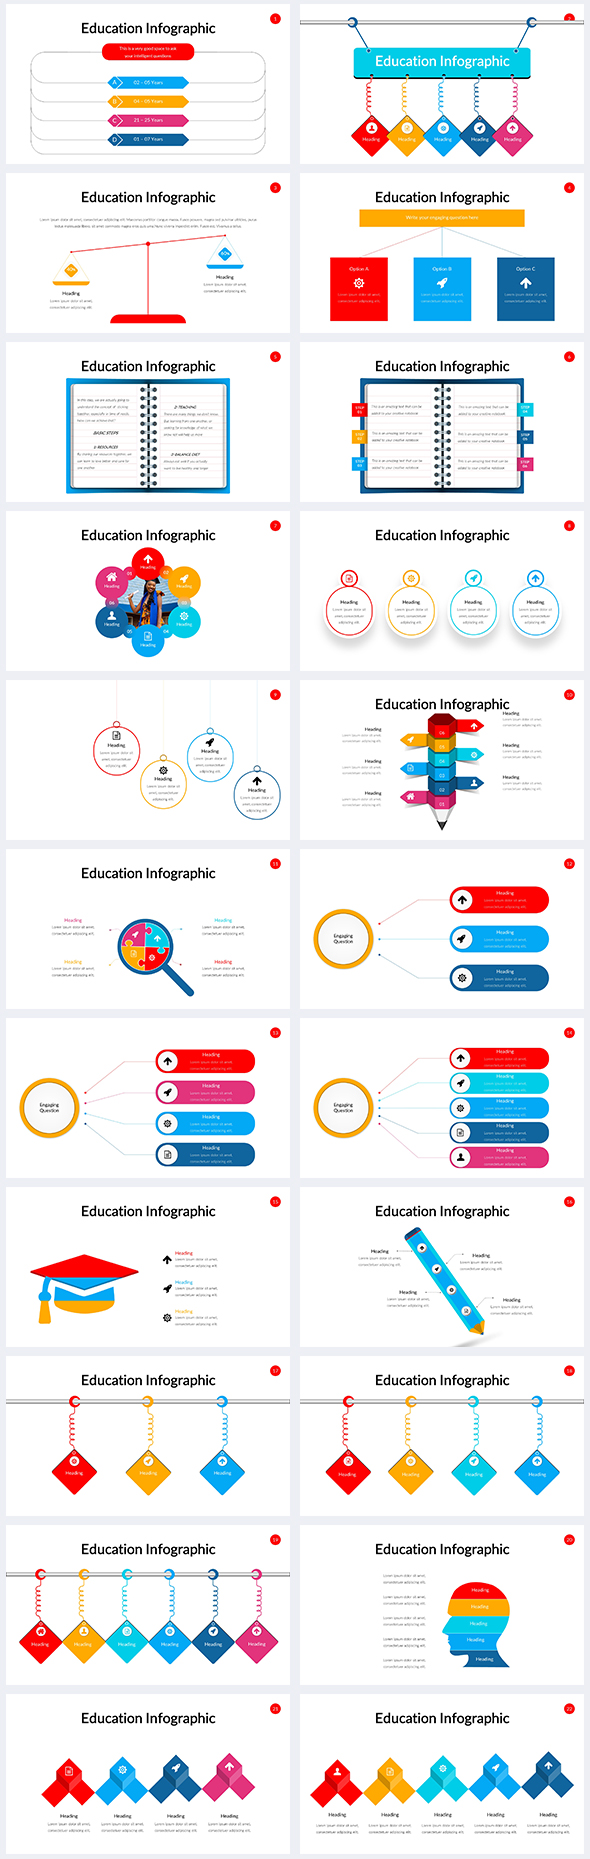 Education-Infographic-Power-Point-Template